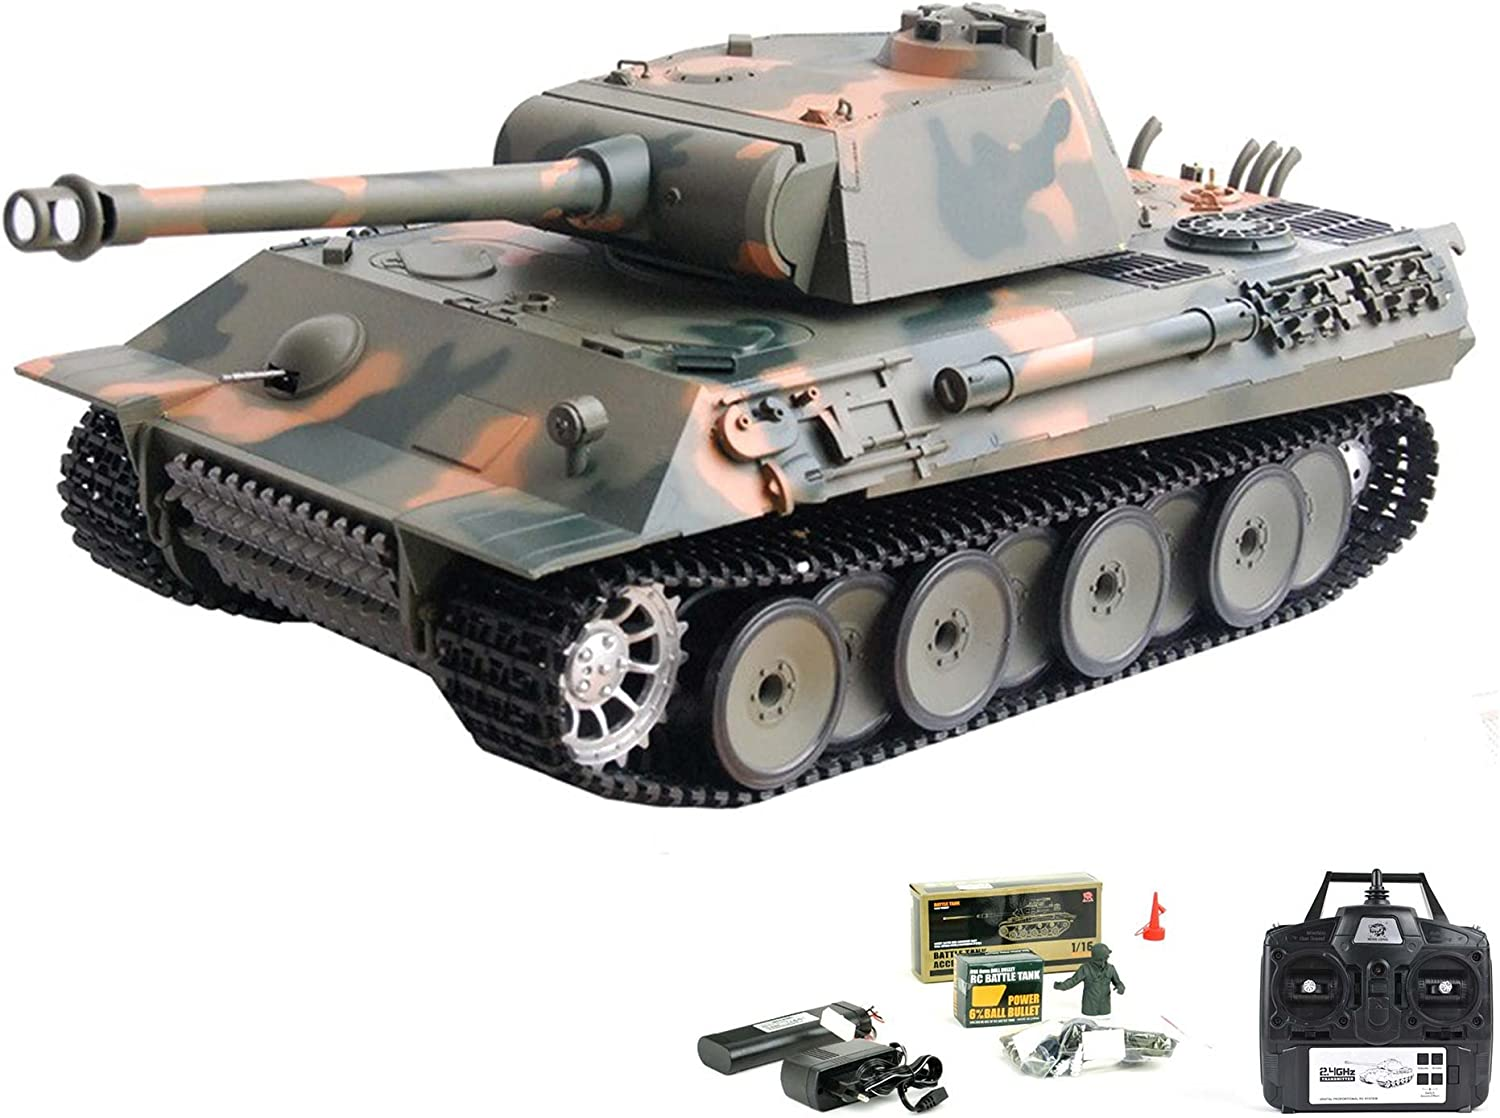 German Panther 2.4 GHz Edition RC ferngesteuerter 1/16 Char, feu, Sound,  fumée, Kit complet RTR: Amazon.es: Juguetes y juegos